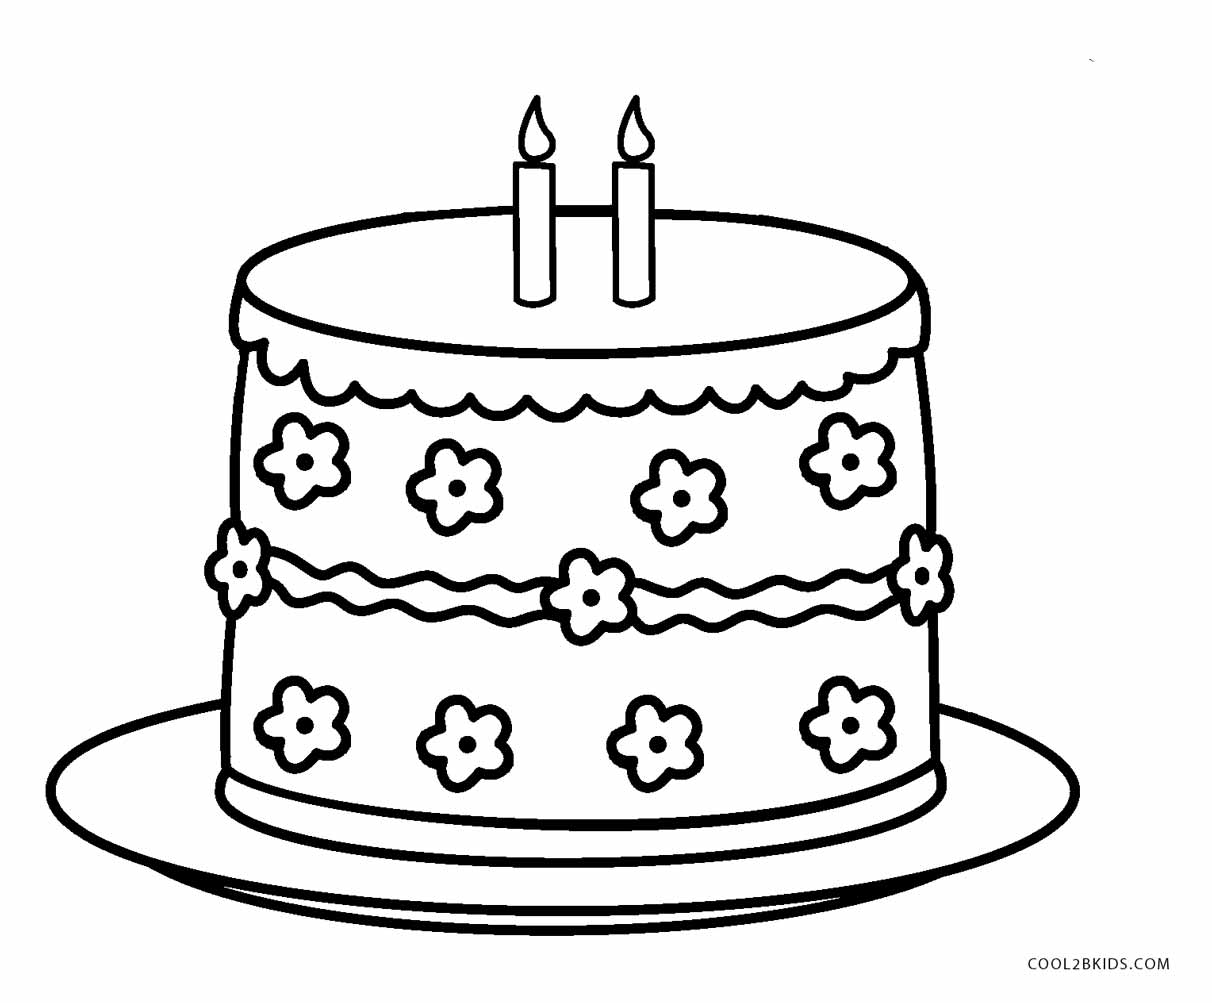 printable birthday cake coloring page get this birthday cake coloring pages free printable 9466 cake page birthday printable coloring